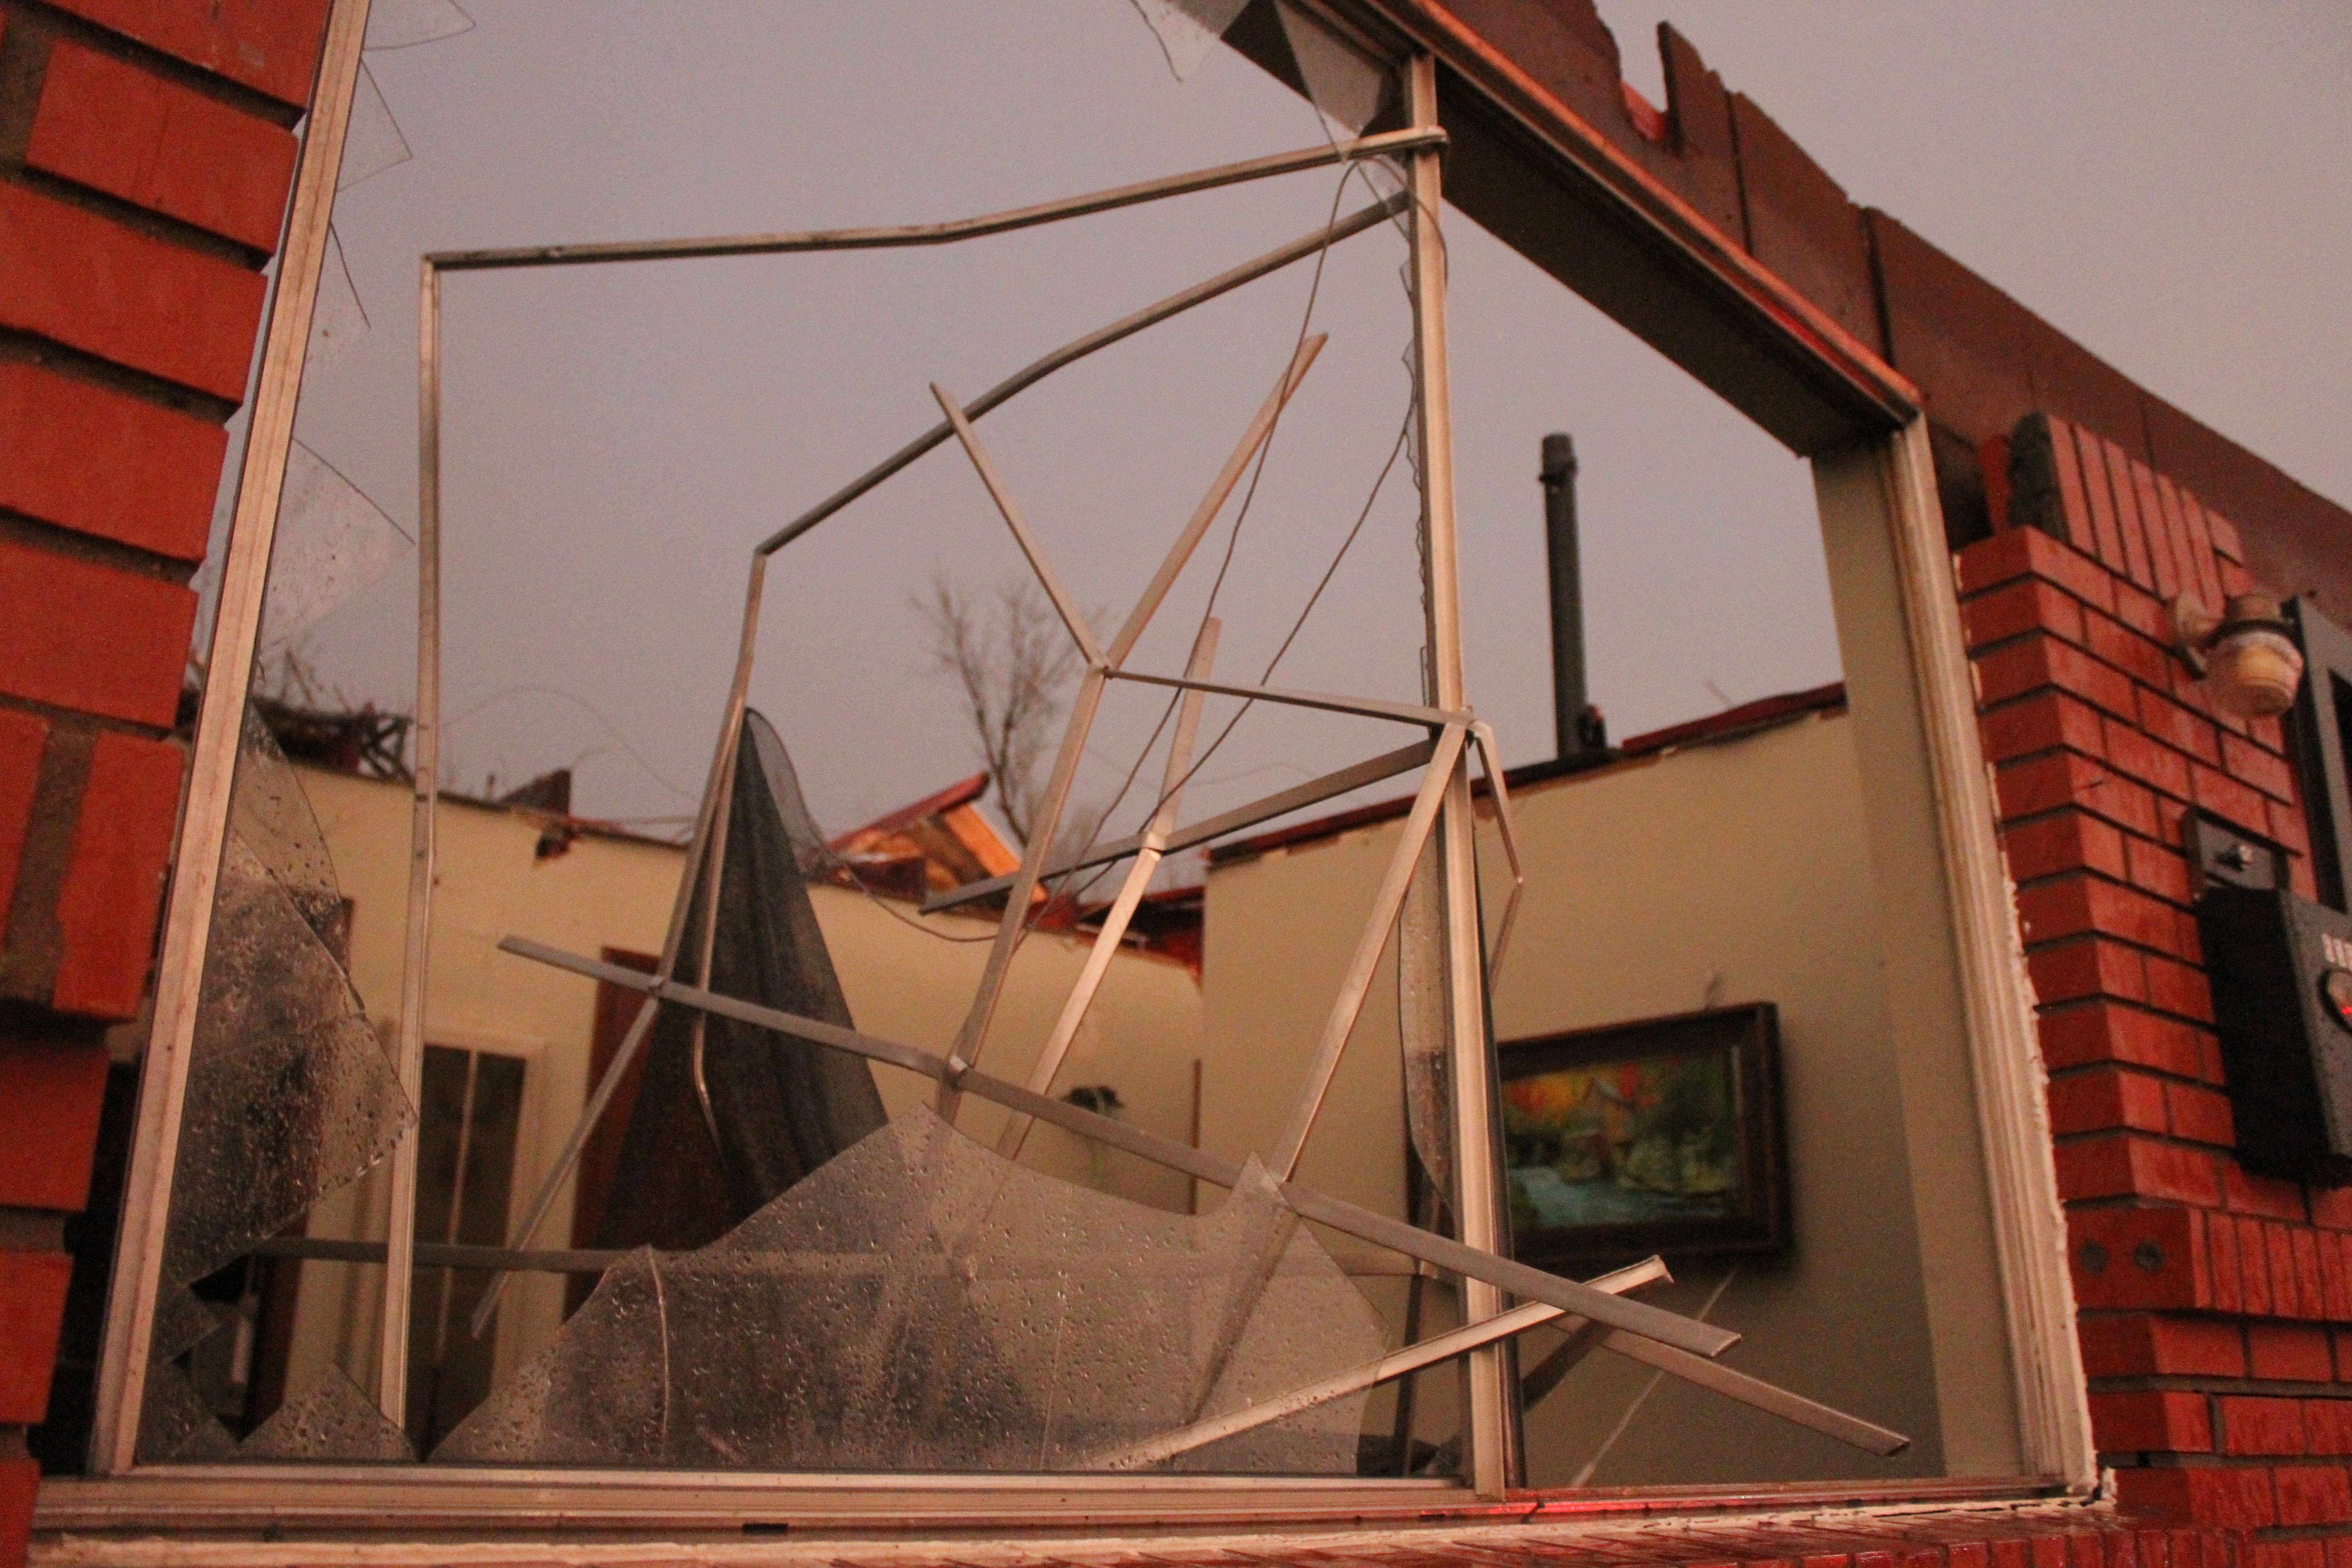 The roof was blown off this home in Moore, Okla. on March 25, 2015.